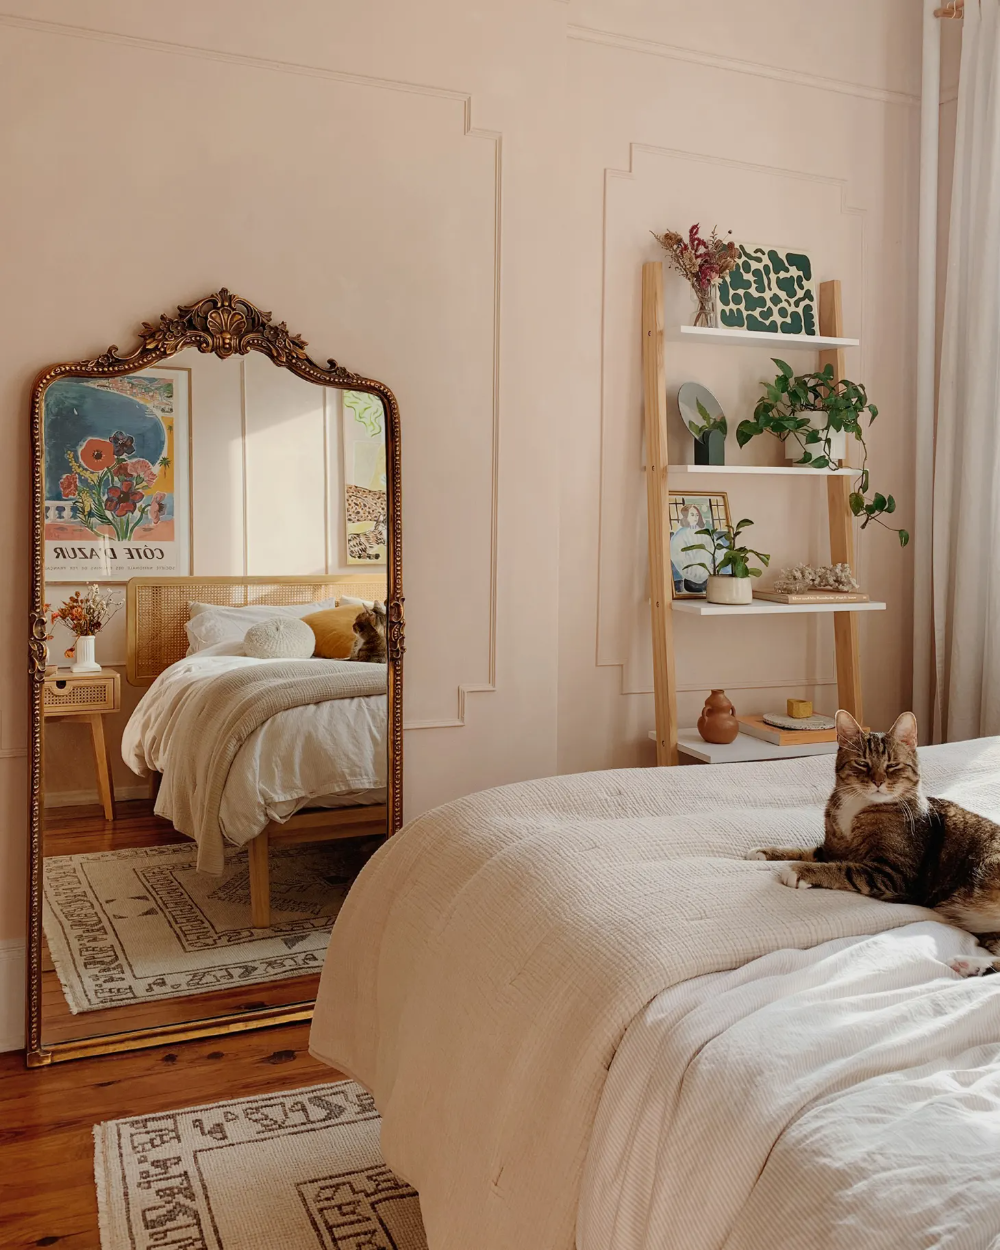 Design Changemakers 2021: How Mallory Fletchall's Pastel-Filled, Playful Space Became Your Go-to Instagram Inspo